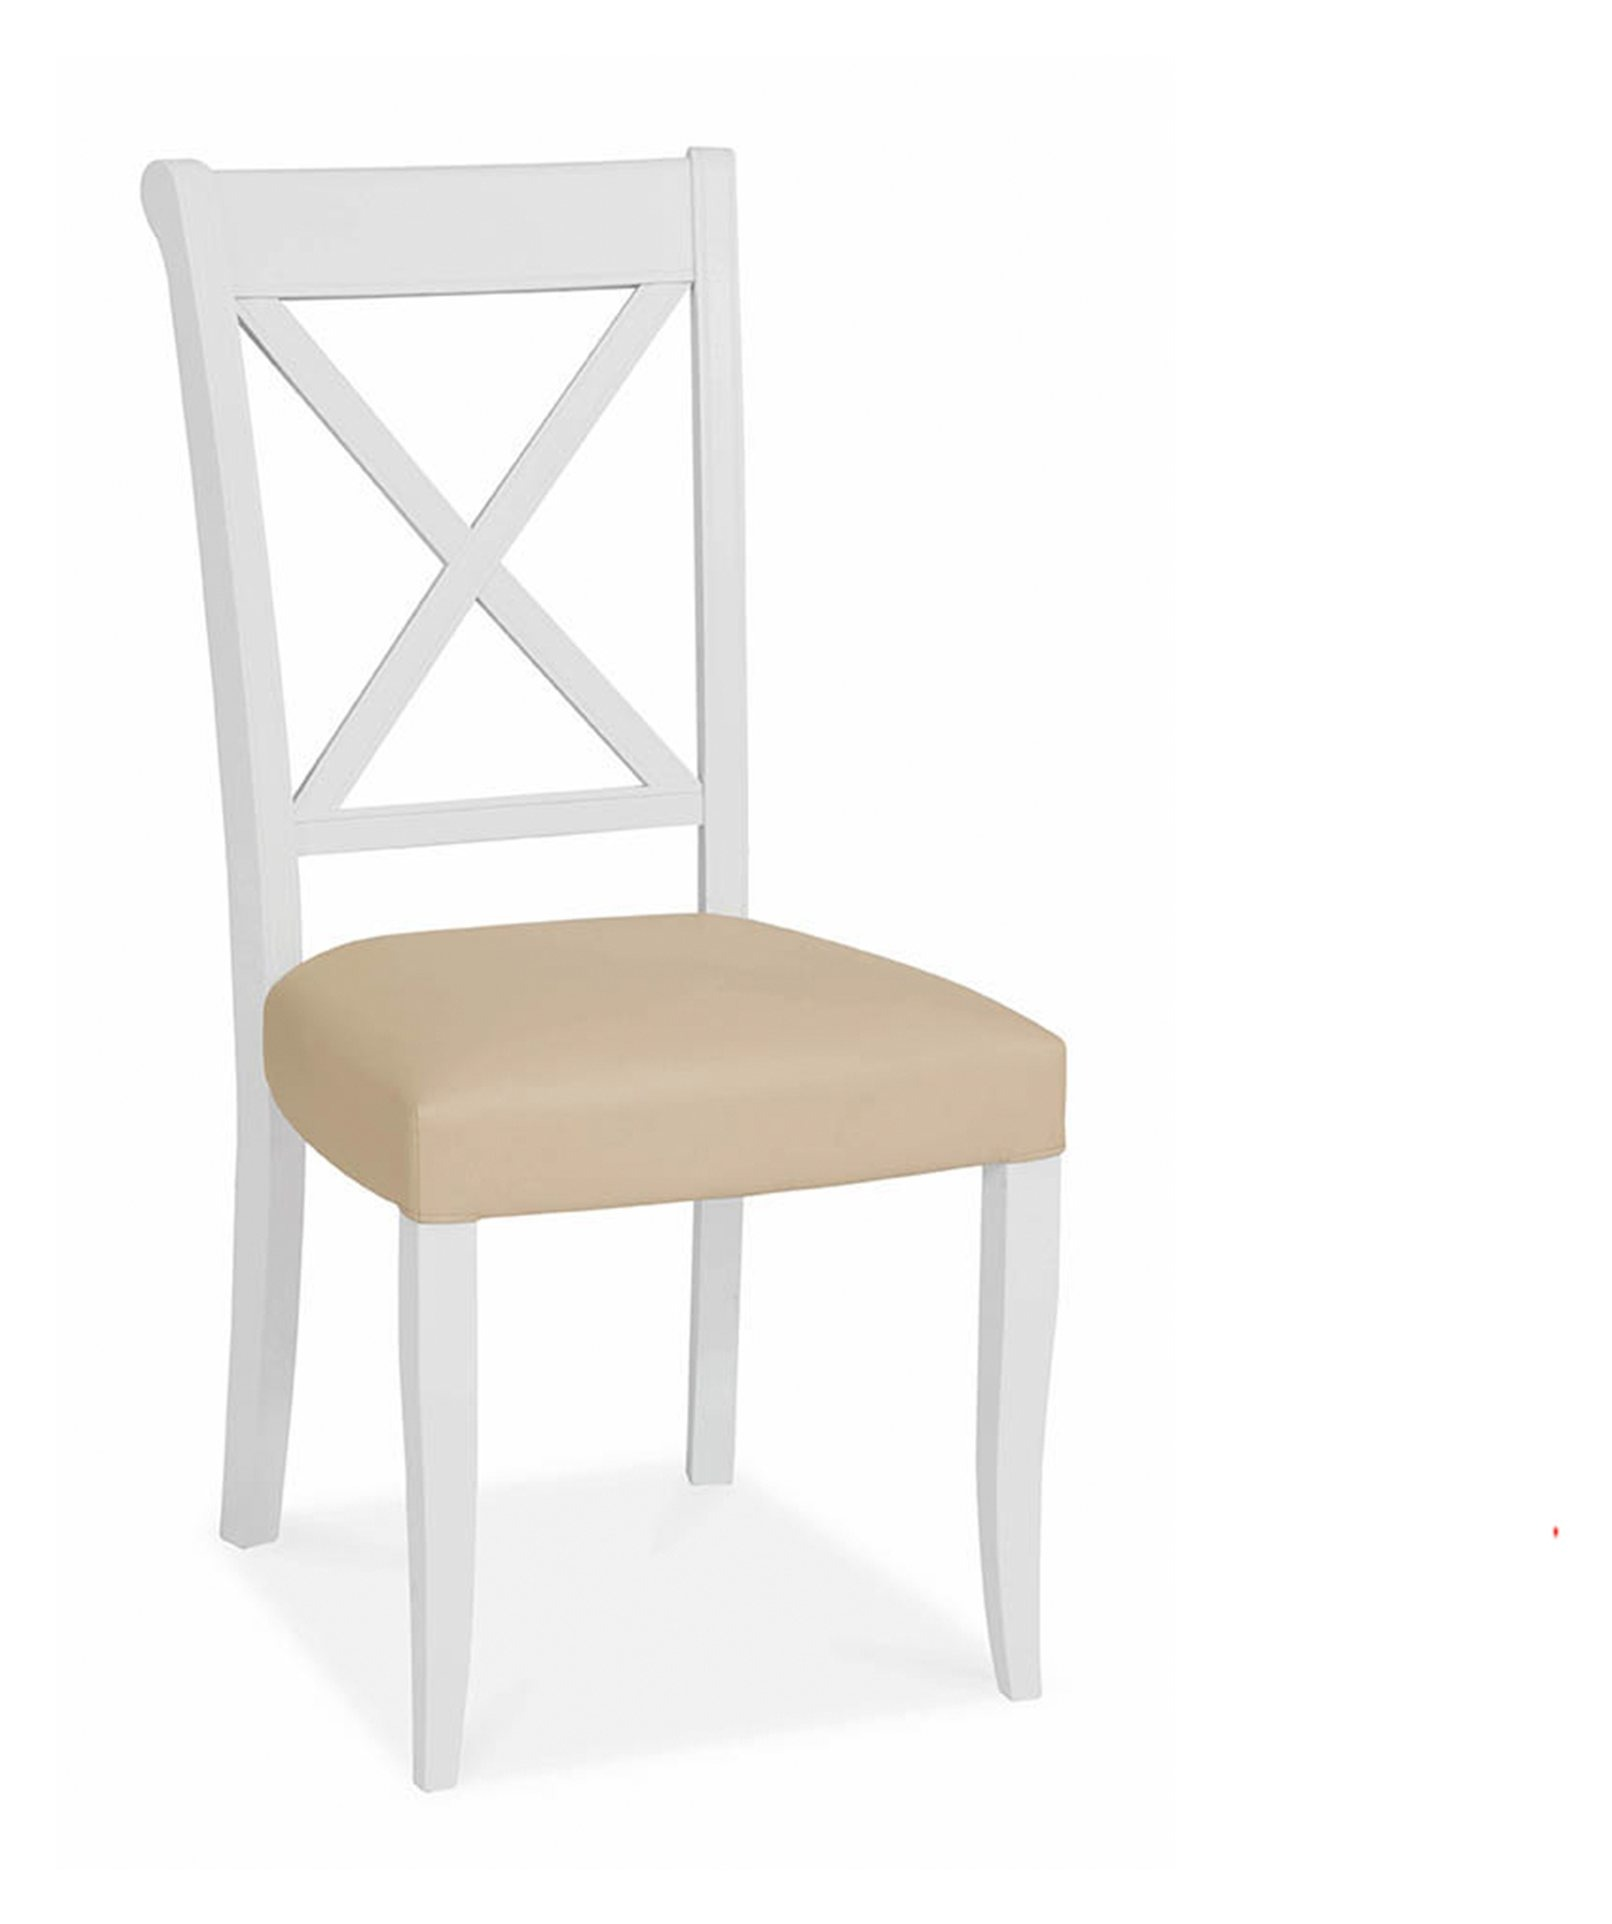 KYRA TWOTONE CHAIR FRONT DETIAL